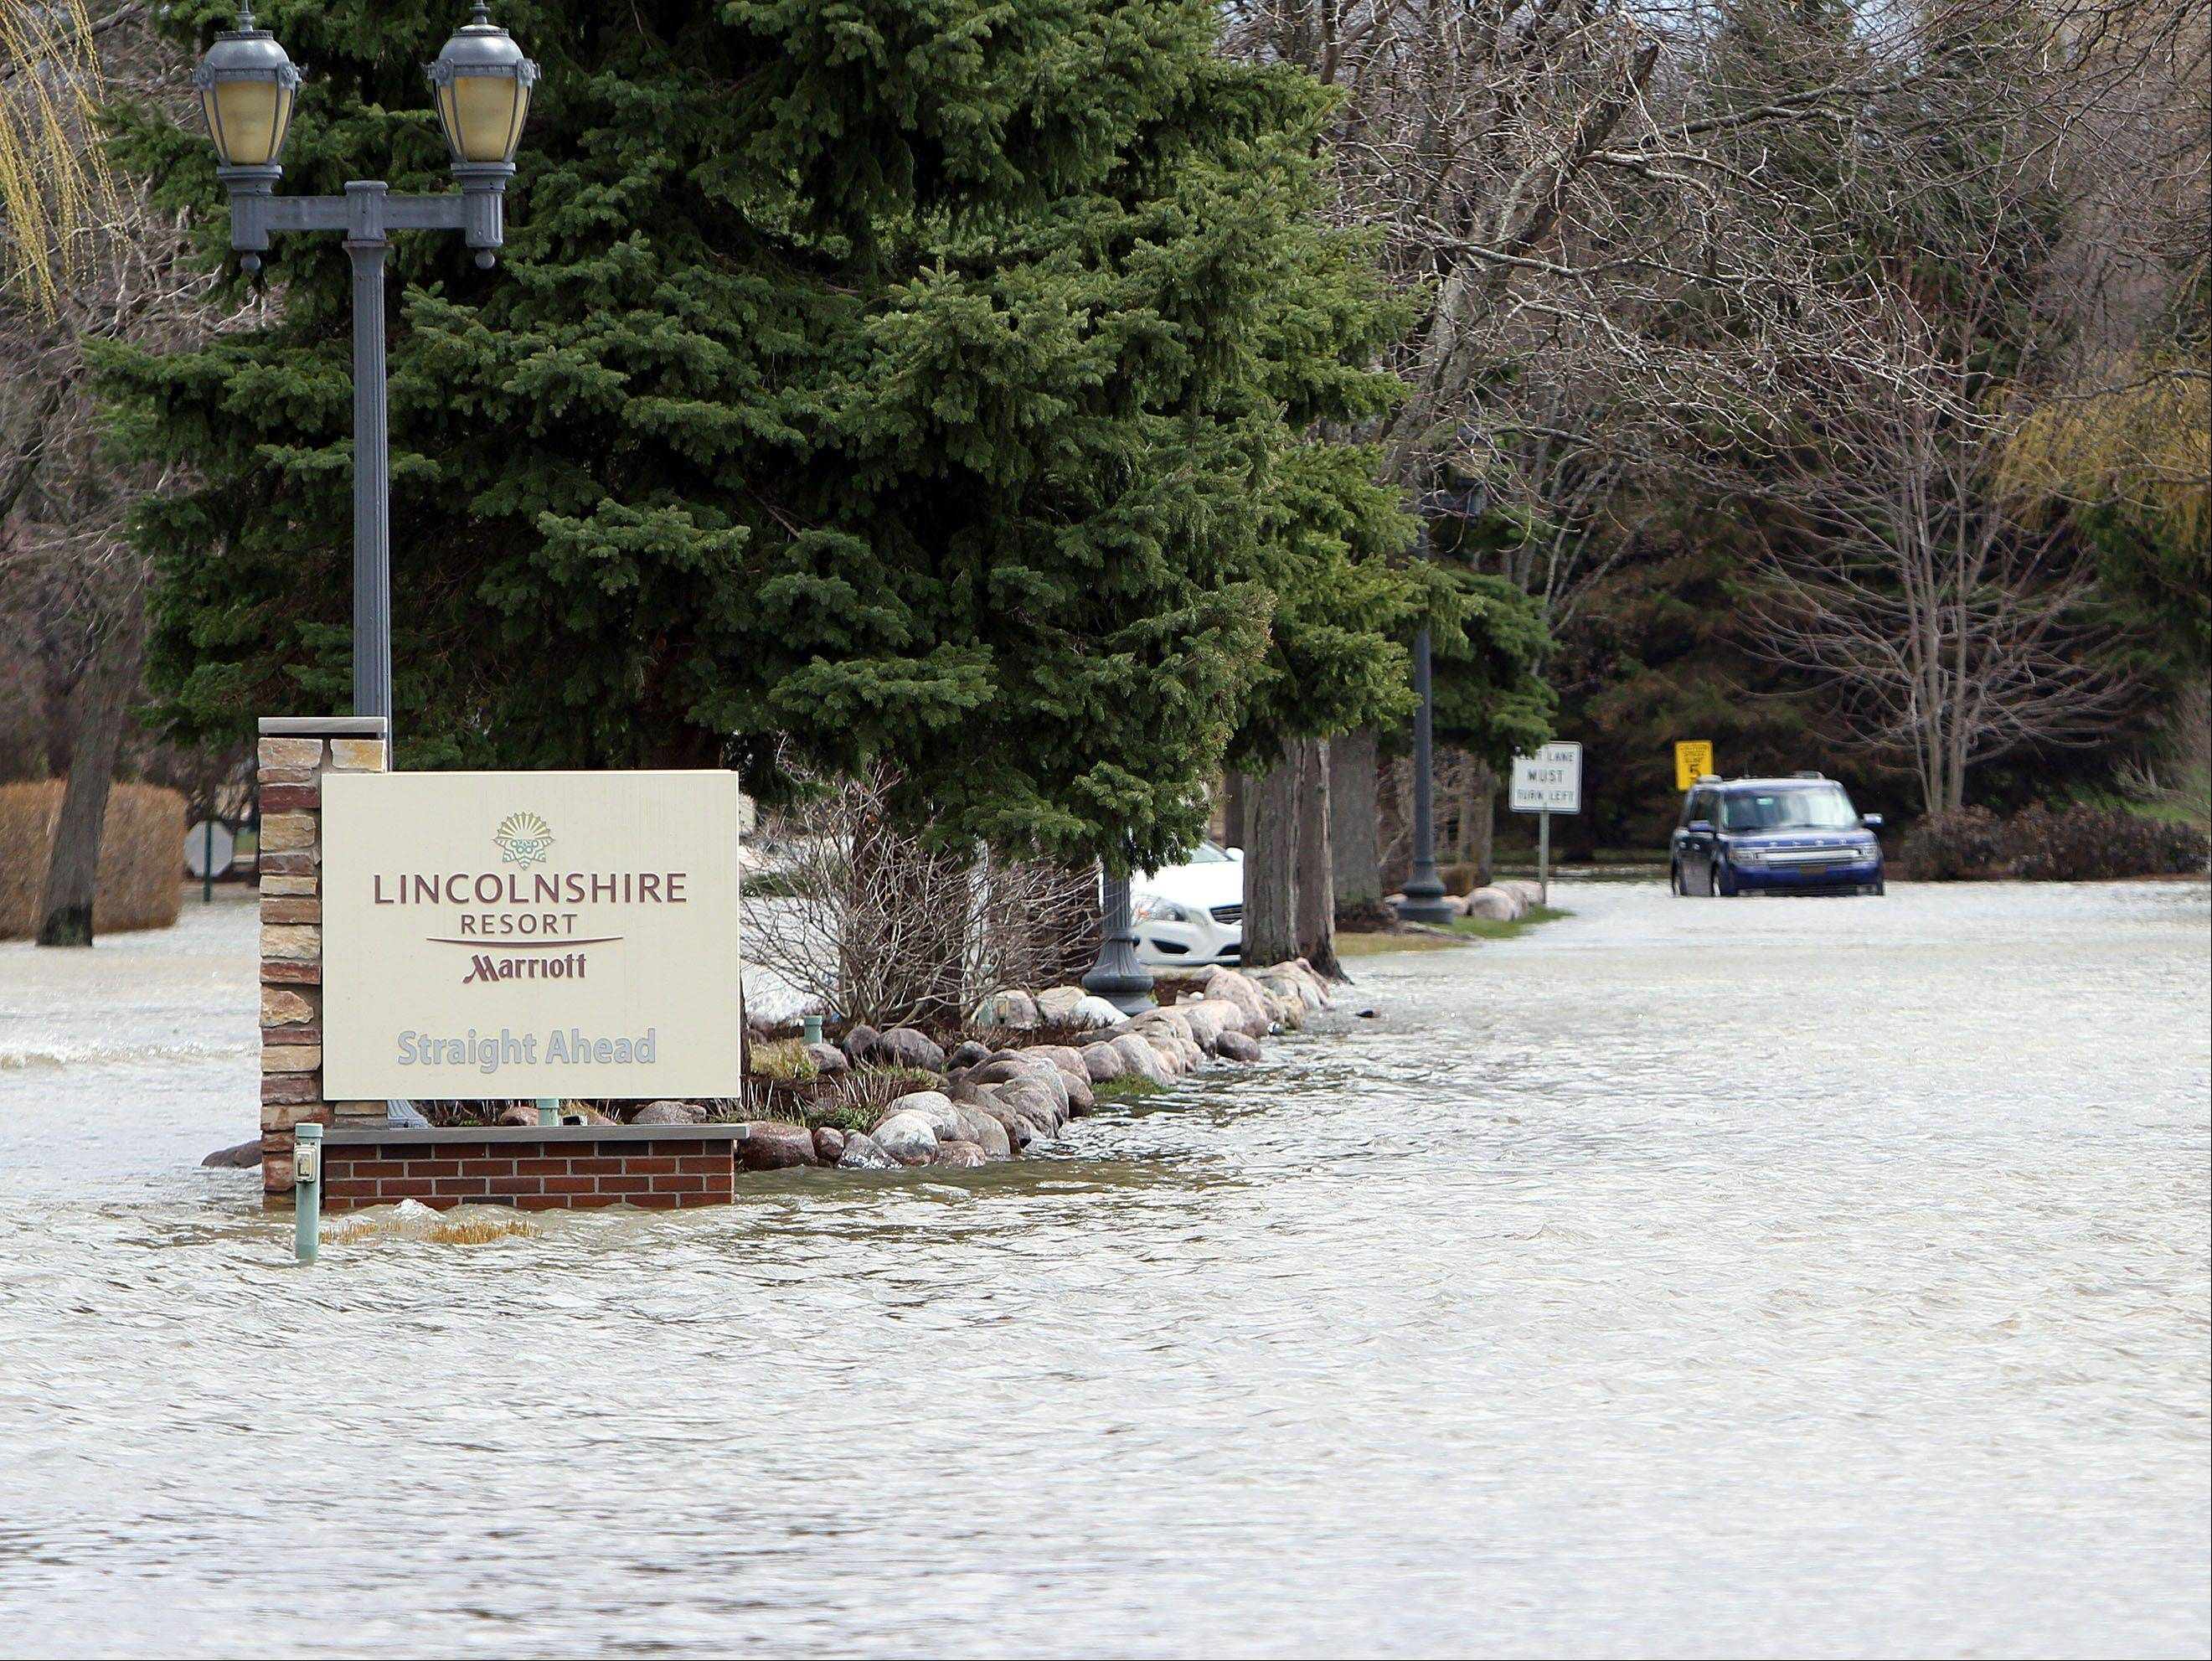 The Lincolshire Marriott Resort is closed due to flooding Friday morning.